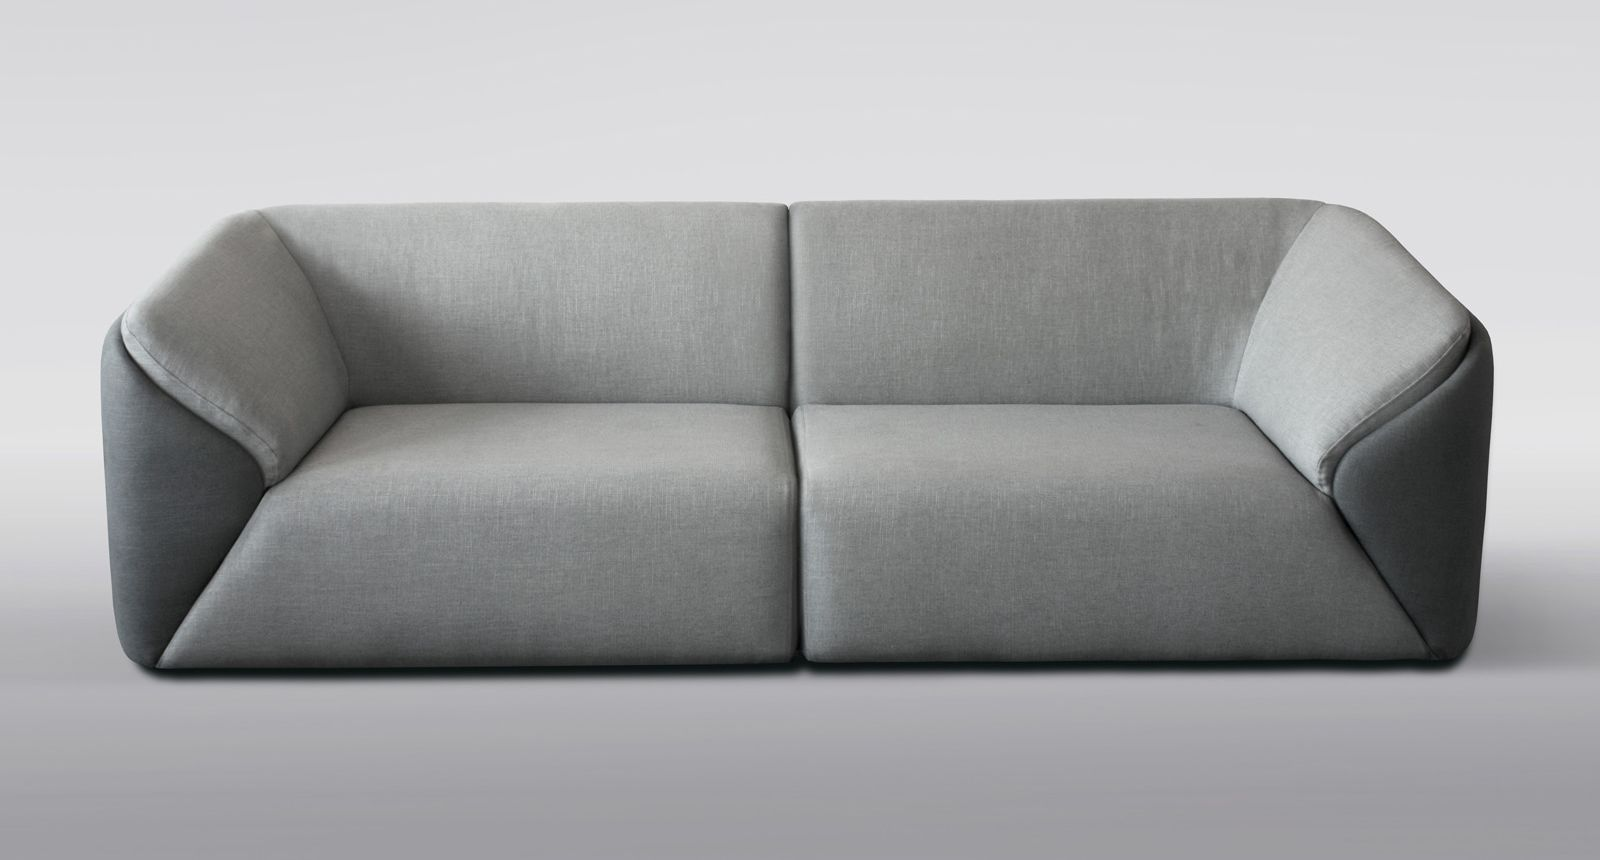 Sofa 60 slice designer sofa 2 for Designer furniture sofa